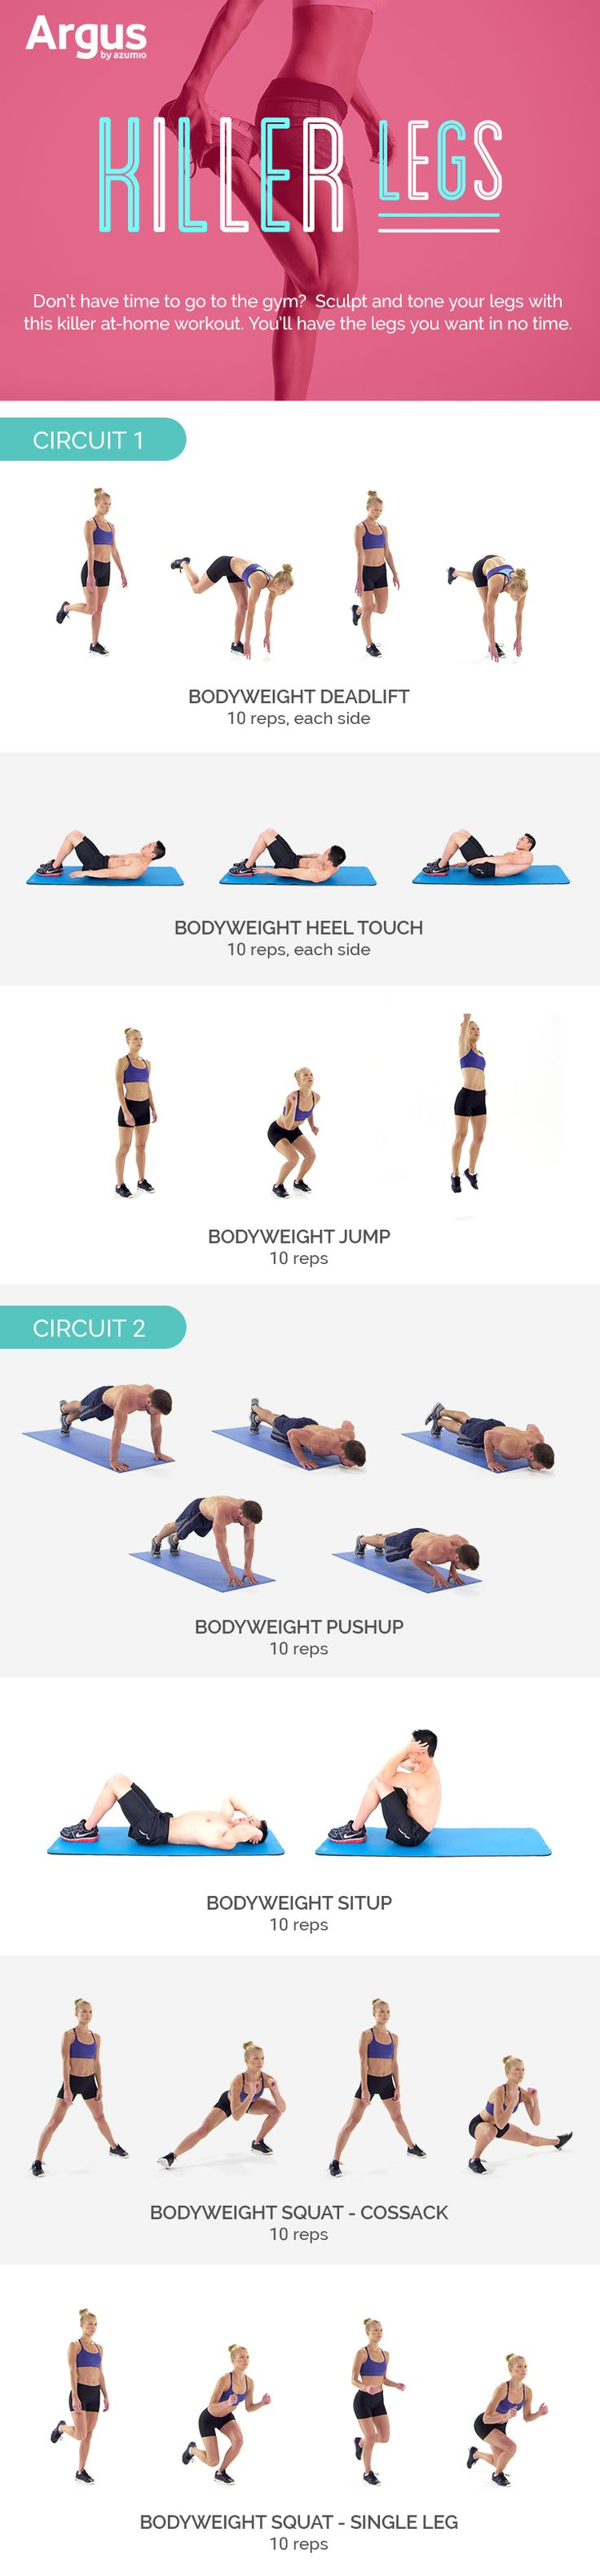 This workout plus many more are available on Argus Premium. Click here to download the Argus app: http://www.azumio.com/